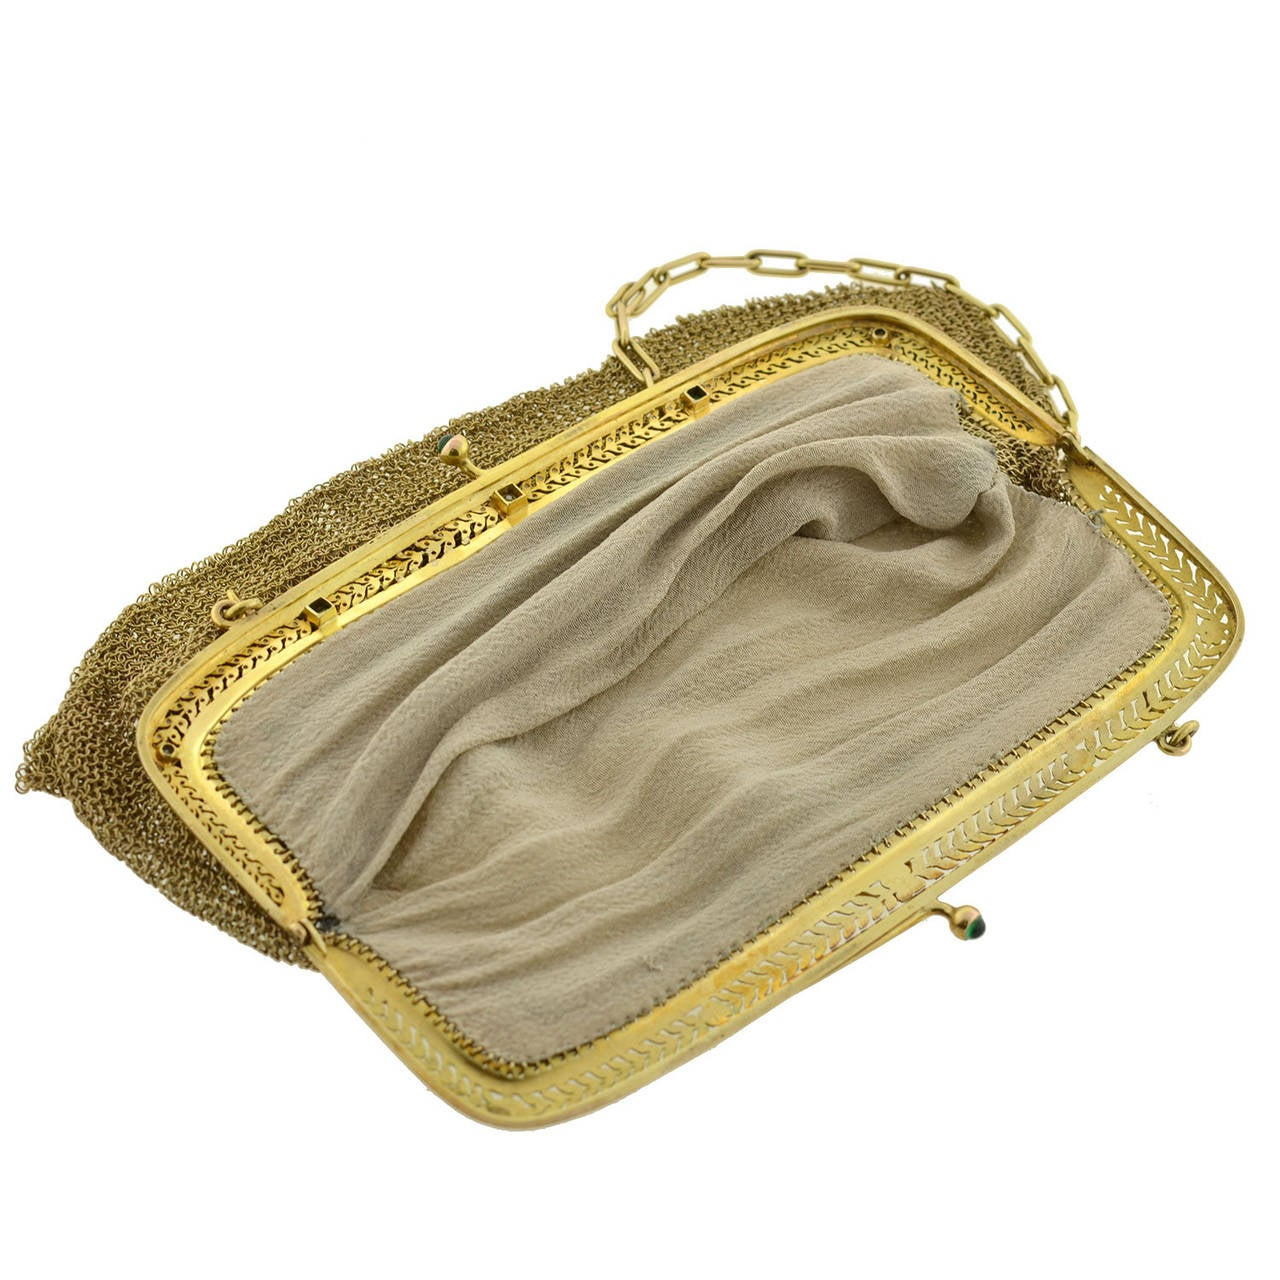 Edwardian Emerald Diamond Gold Mesh Purse In Excellent Condition For Sale In Narberth, PA